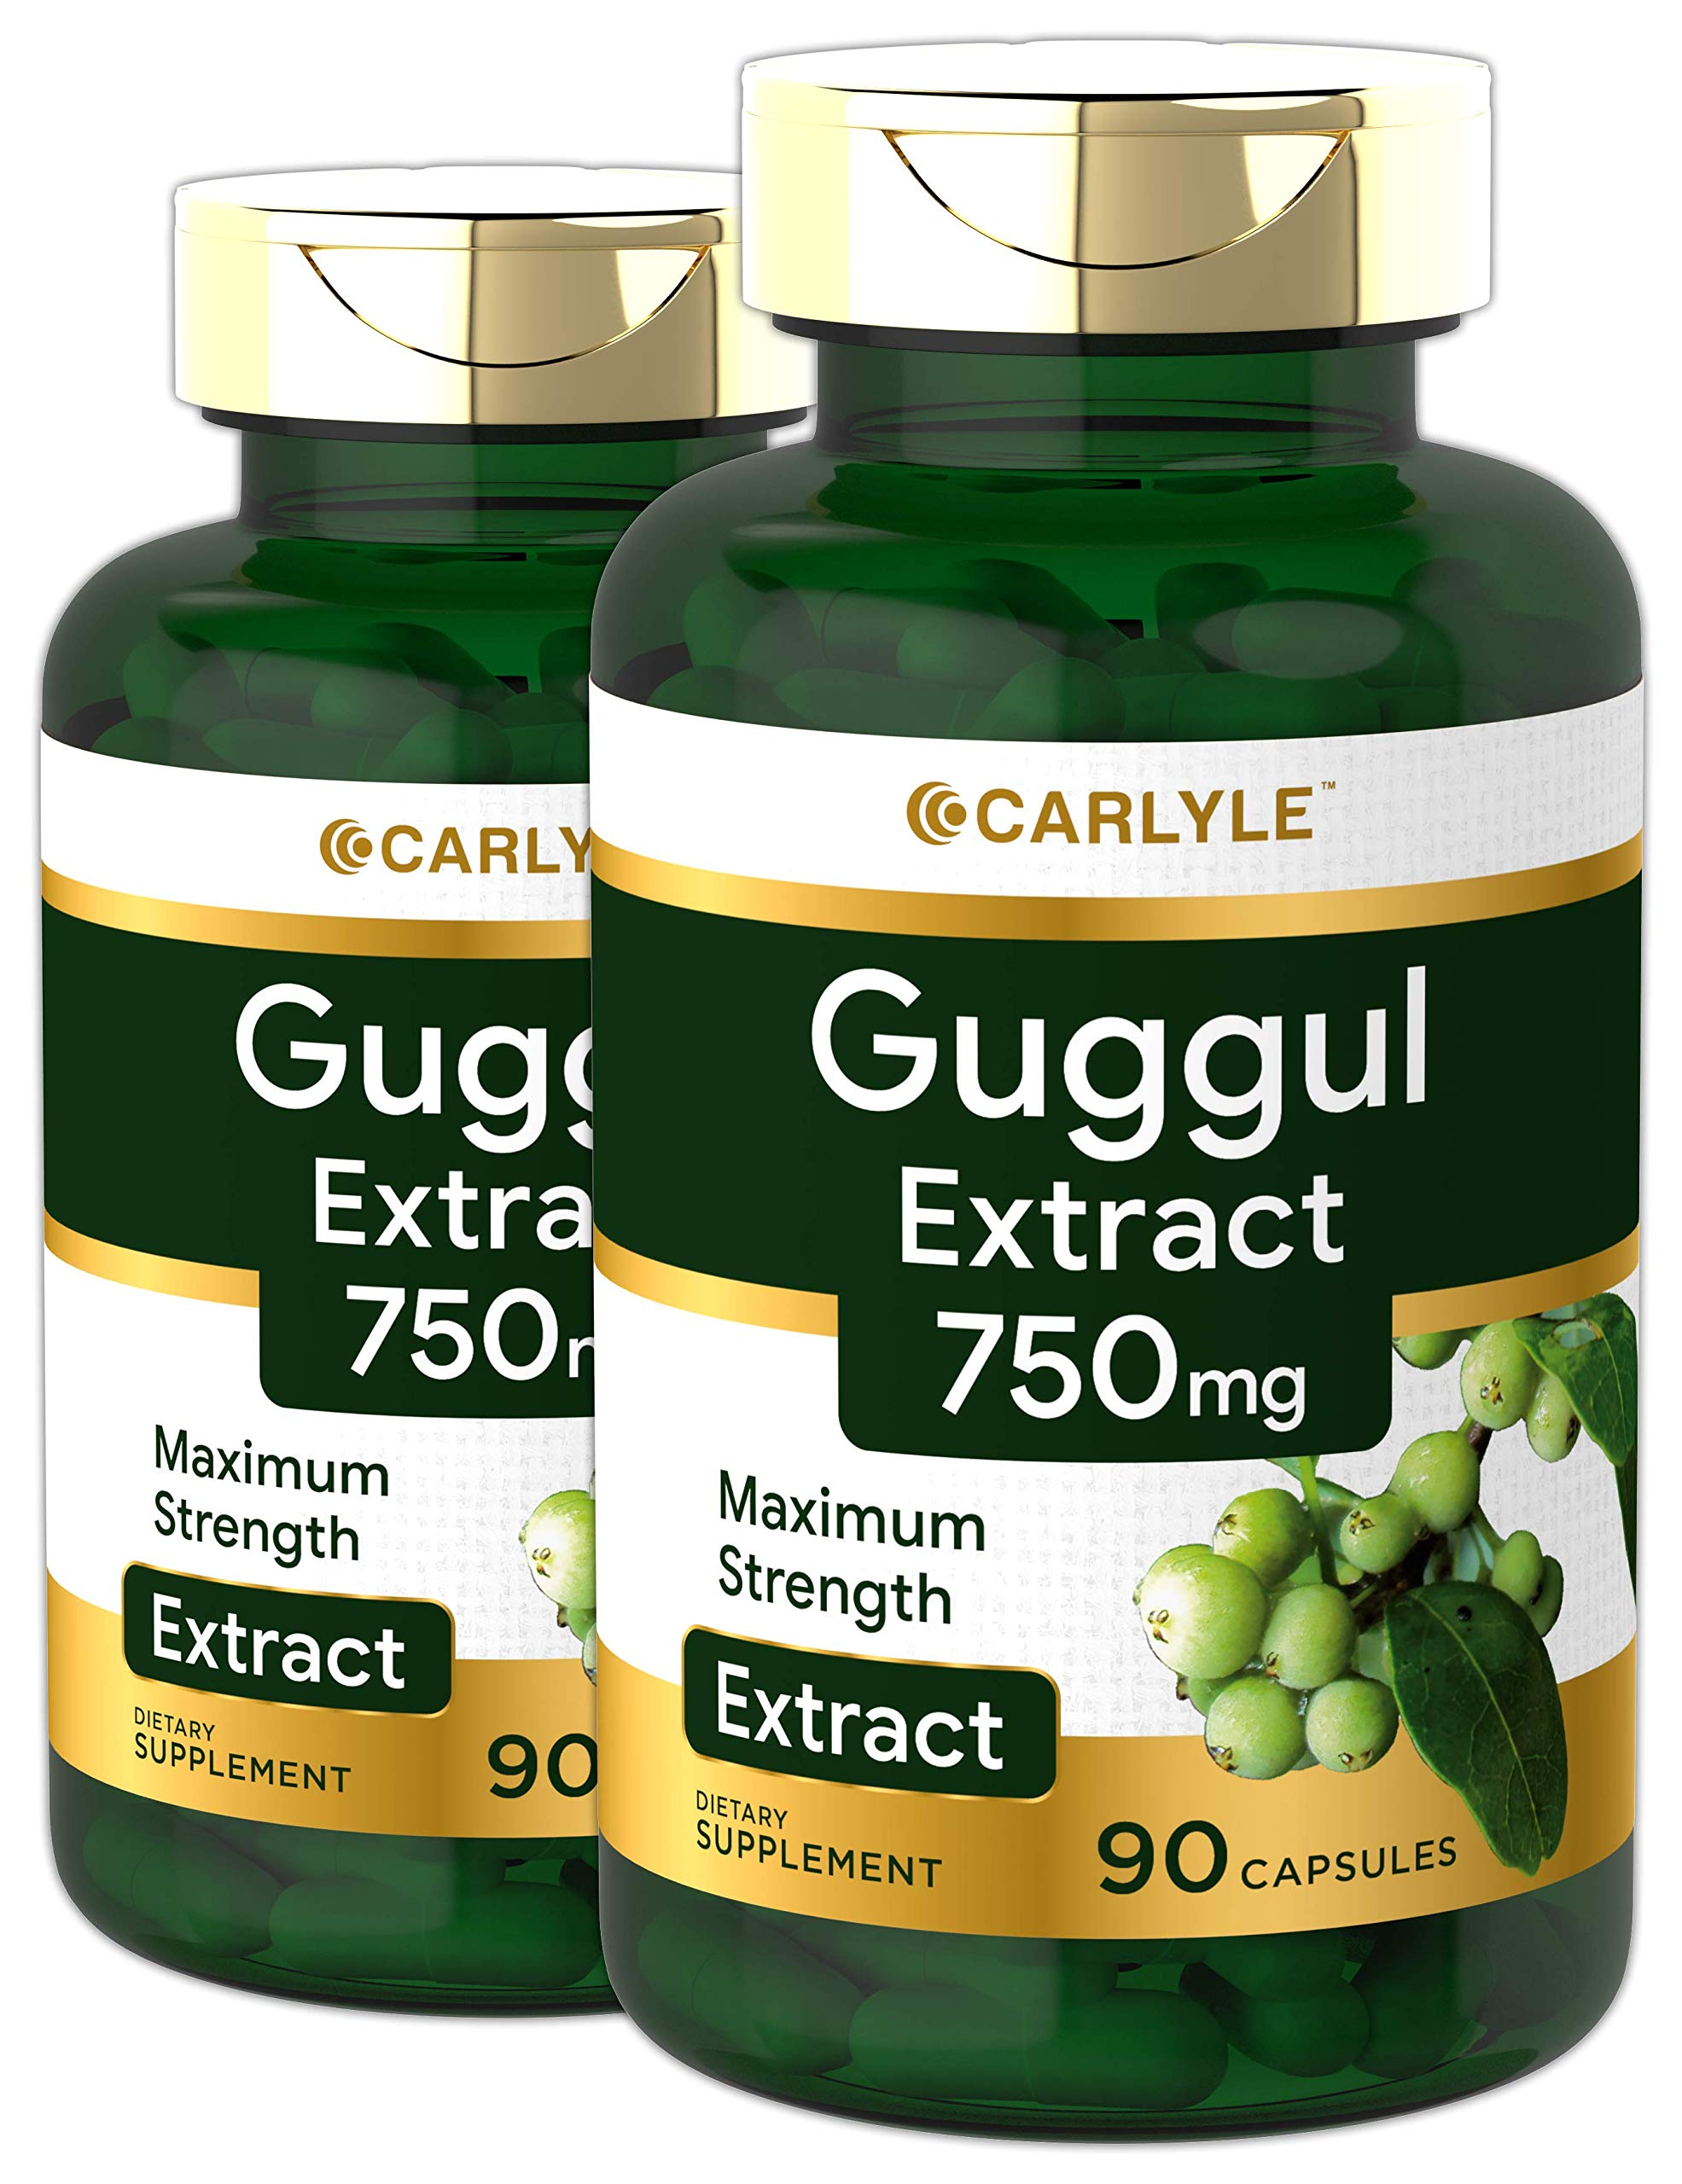 Carlyle Guggul Extract 750 mg Guggulsterone 180 Capsules | Supports Healthy Cholesterol Levels | Non-GMO and Gluten Free Supplement, 2 pack